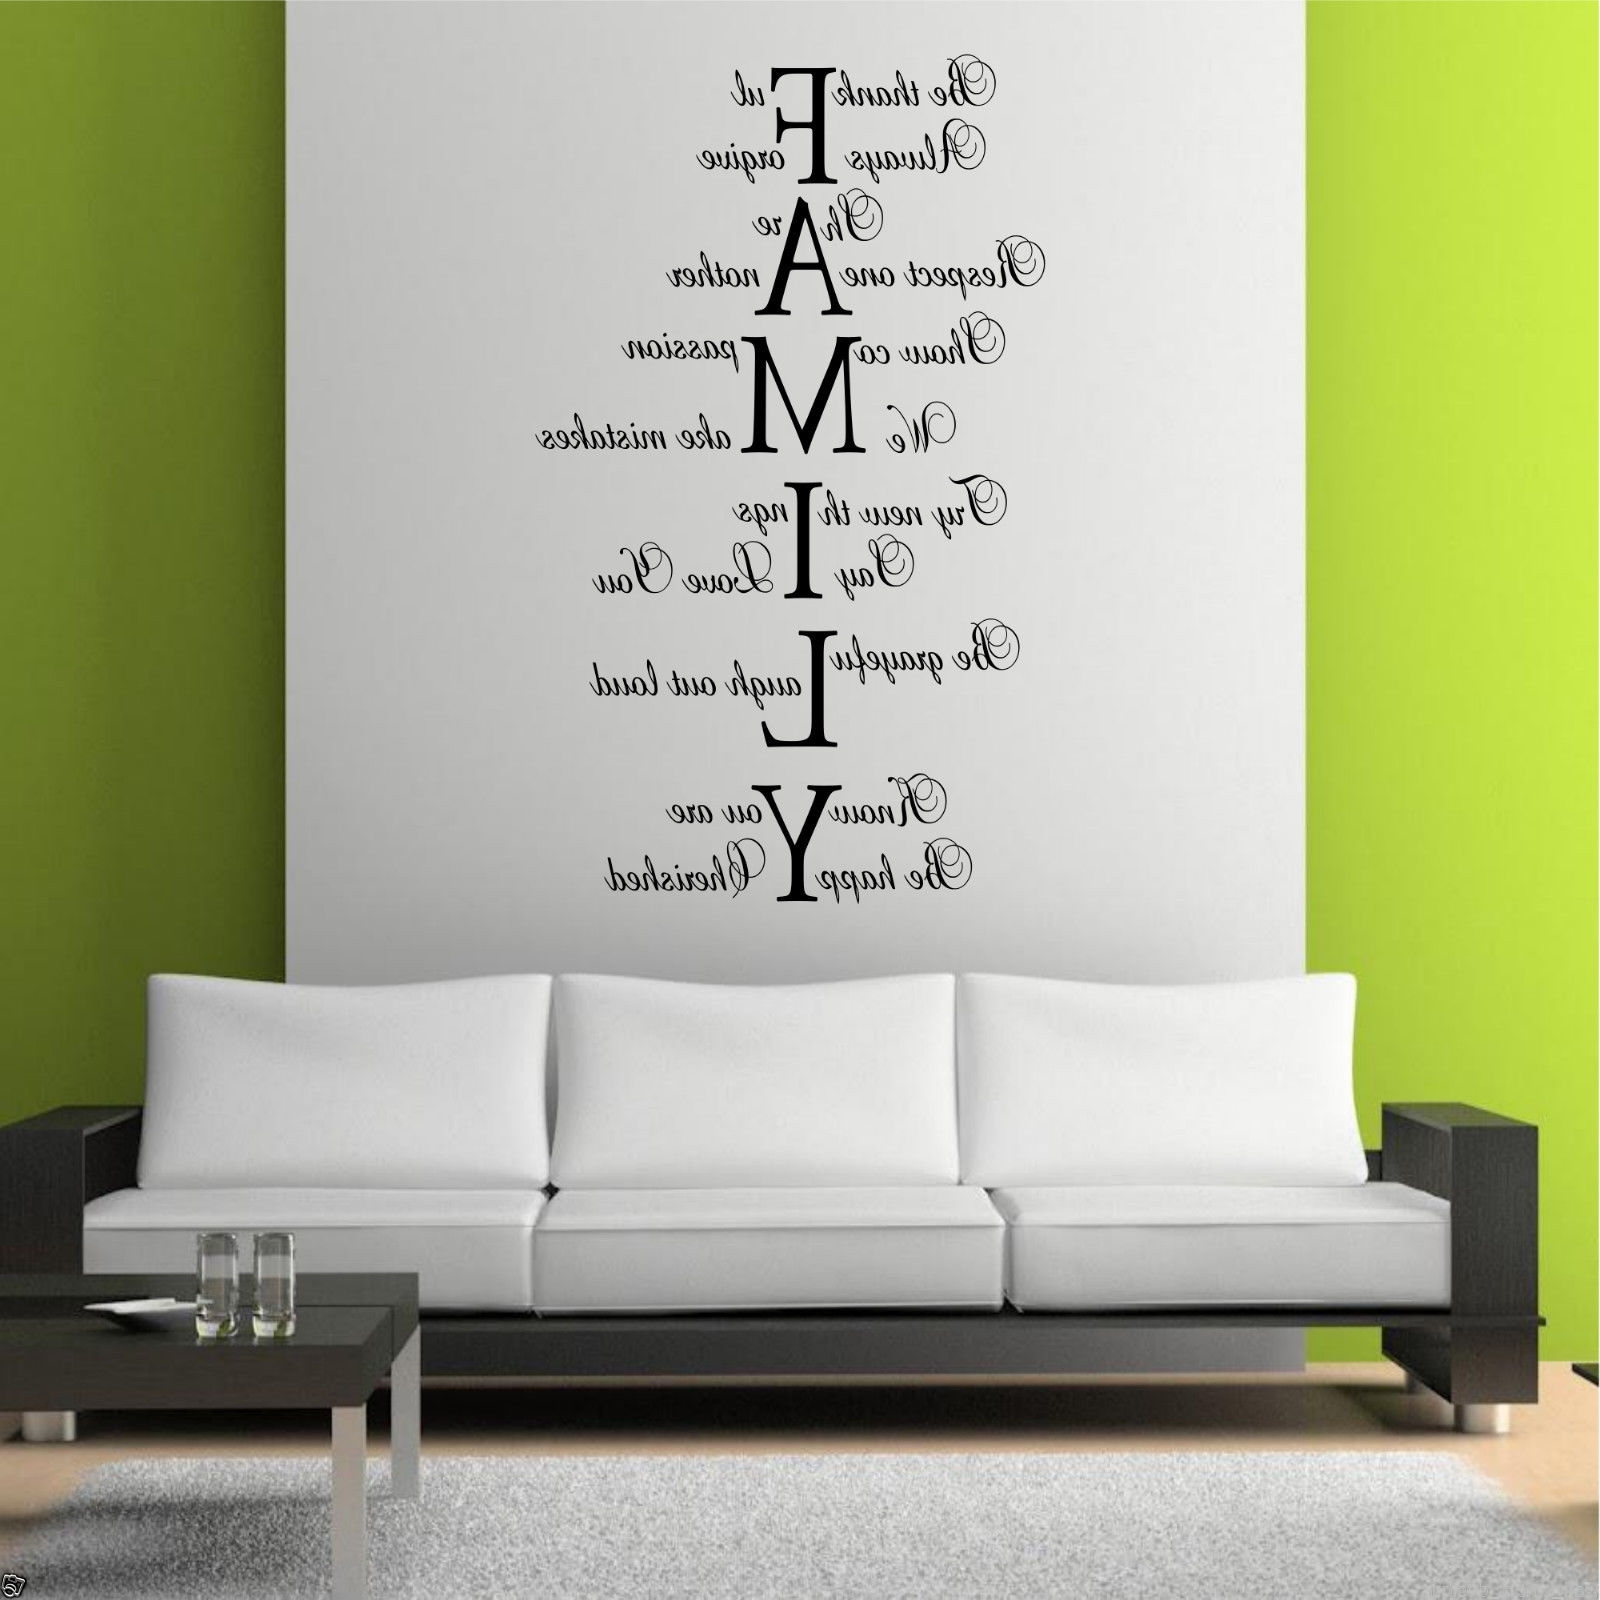 Fashionable B Awesome Www Wall Cool Www Wall Art Stickers – Wall Decoration Ideas For Wall Art Stickers (View 5 of 15)